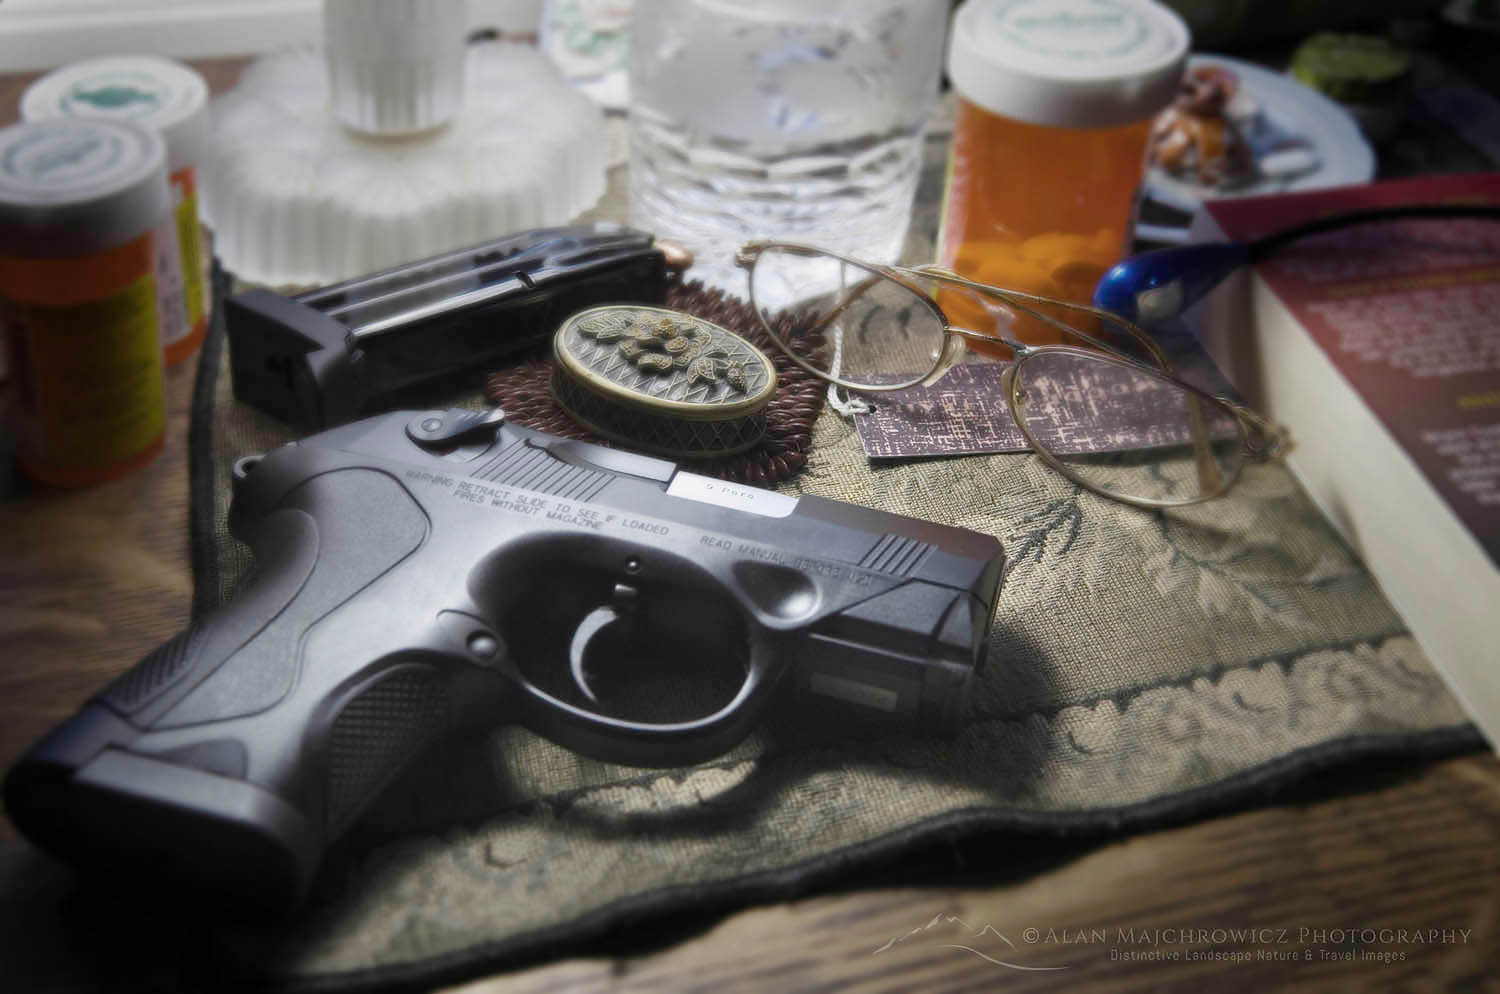 Beretta PX4 Storm semi-automatic pistol with 9mm ammunition on bedroom nightstand with prescription medication